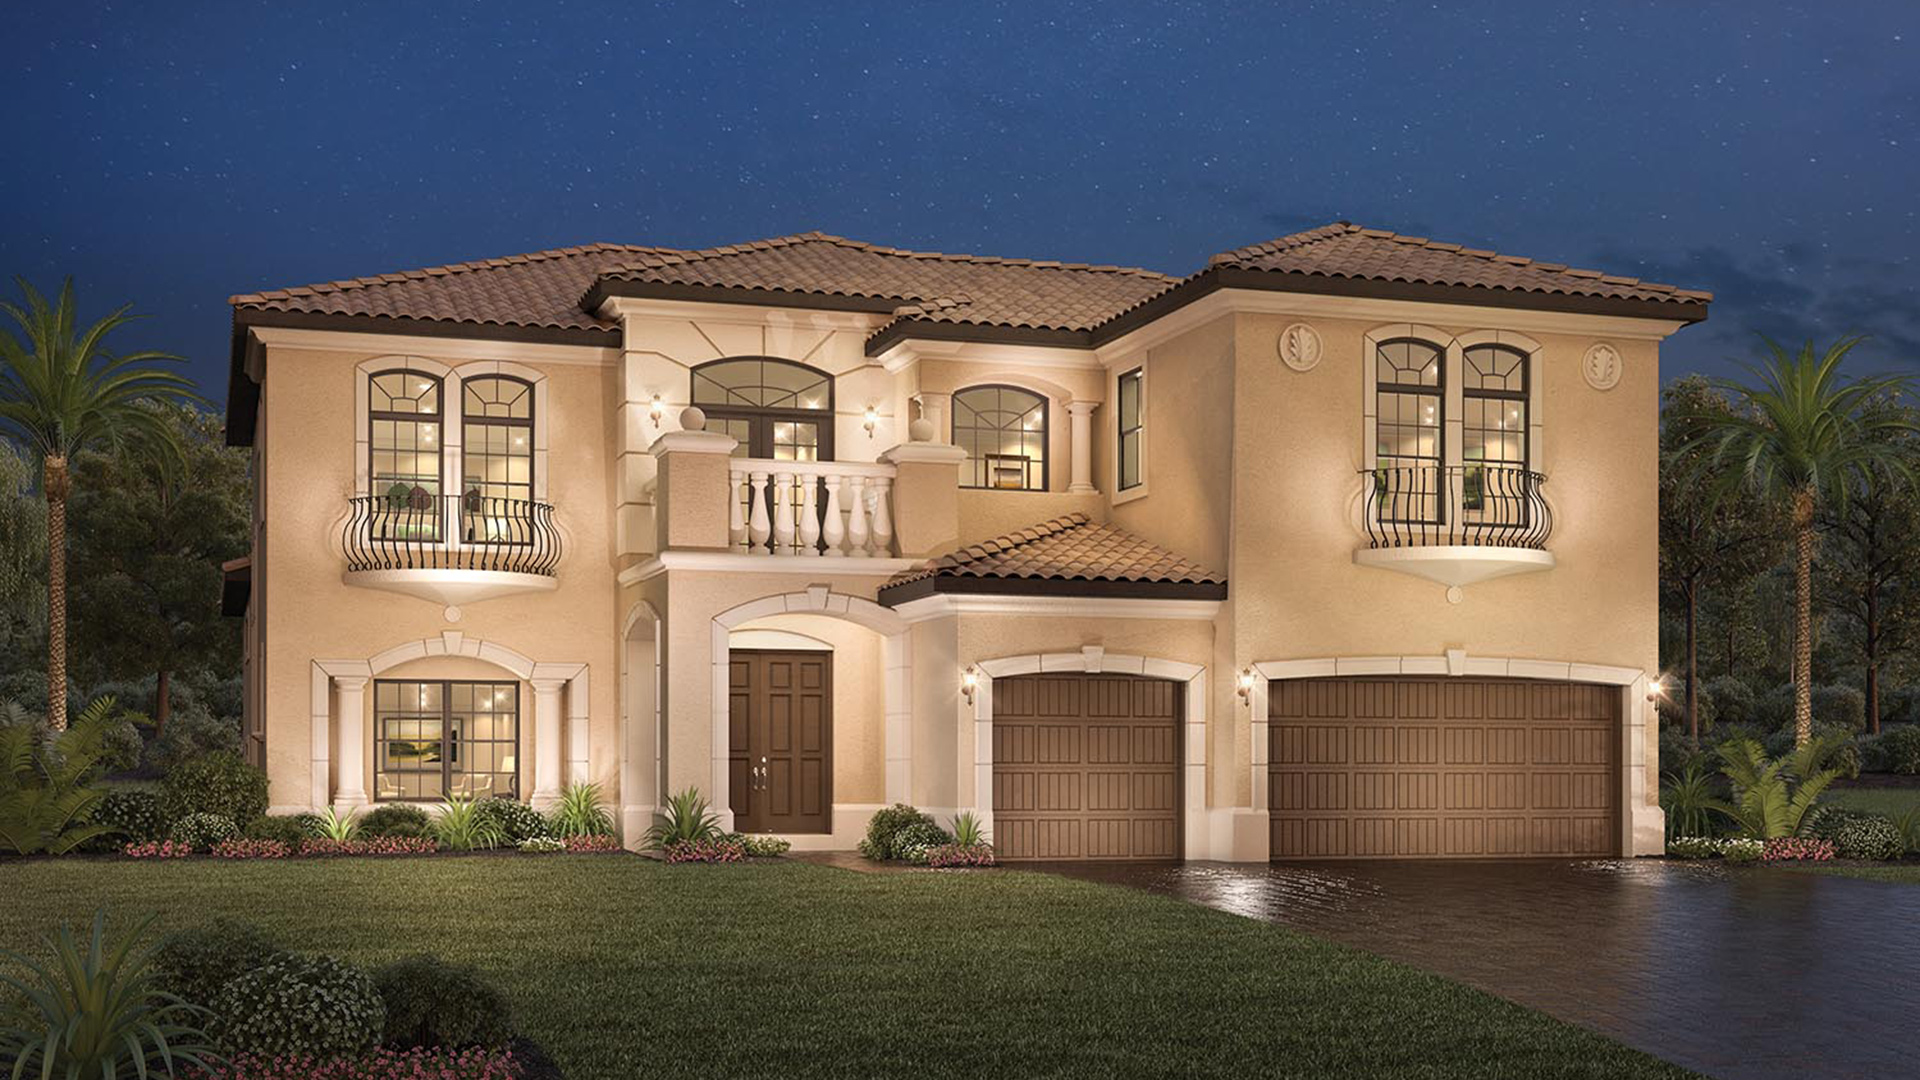 Parkland golf country club monogram collection the for Carrington homes